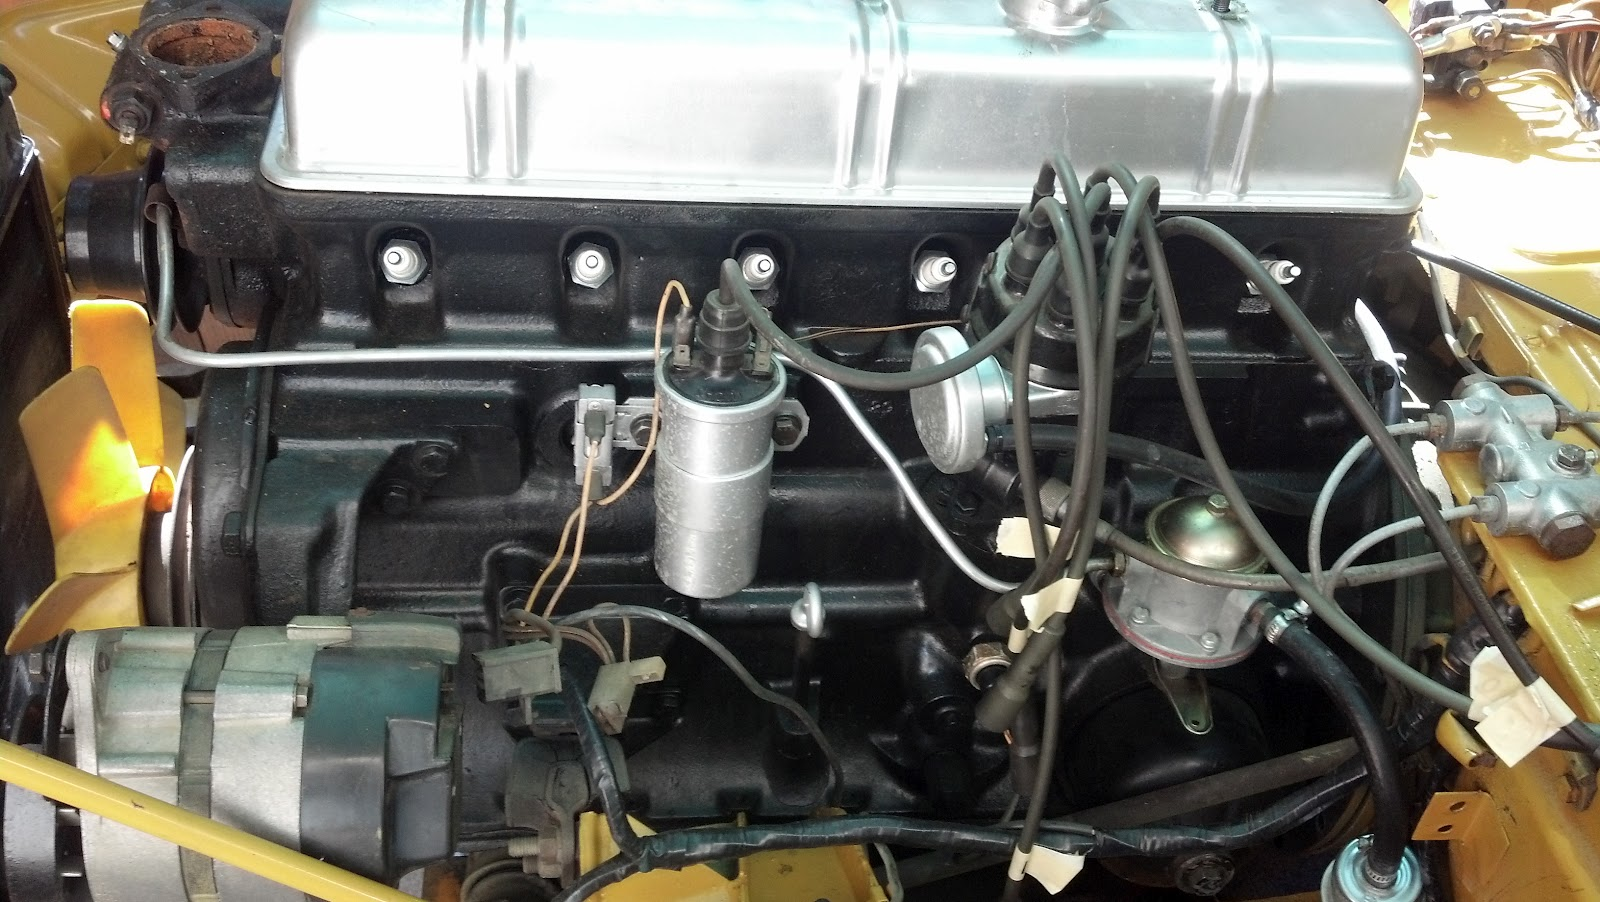 Triumph Engine and Gearbox rebuild: 1971 Triumph GT6 Engine and